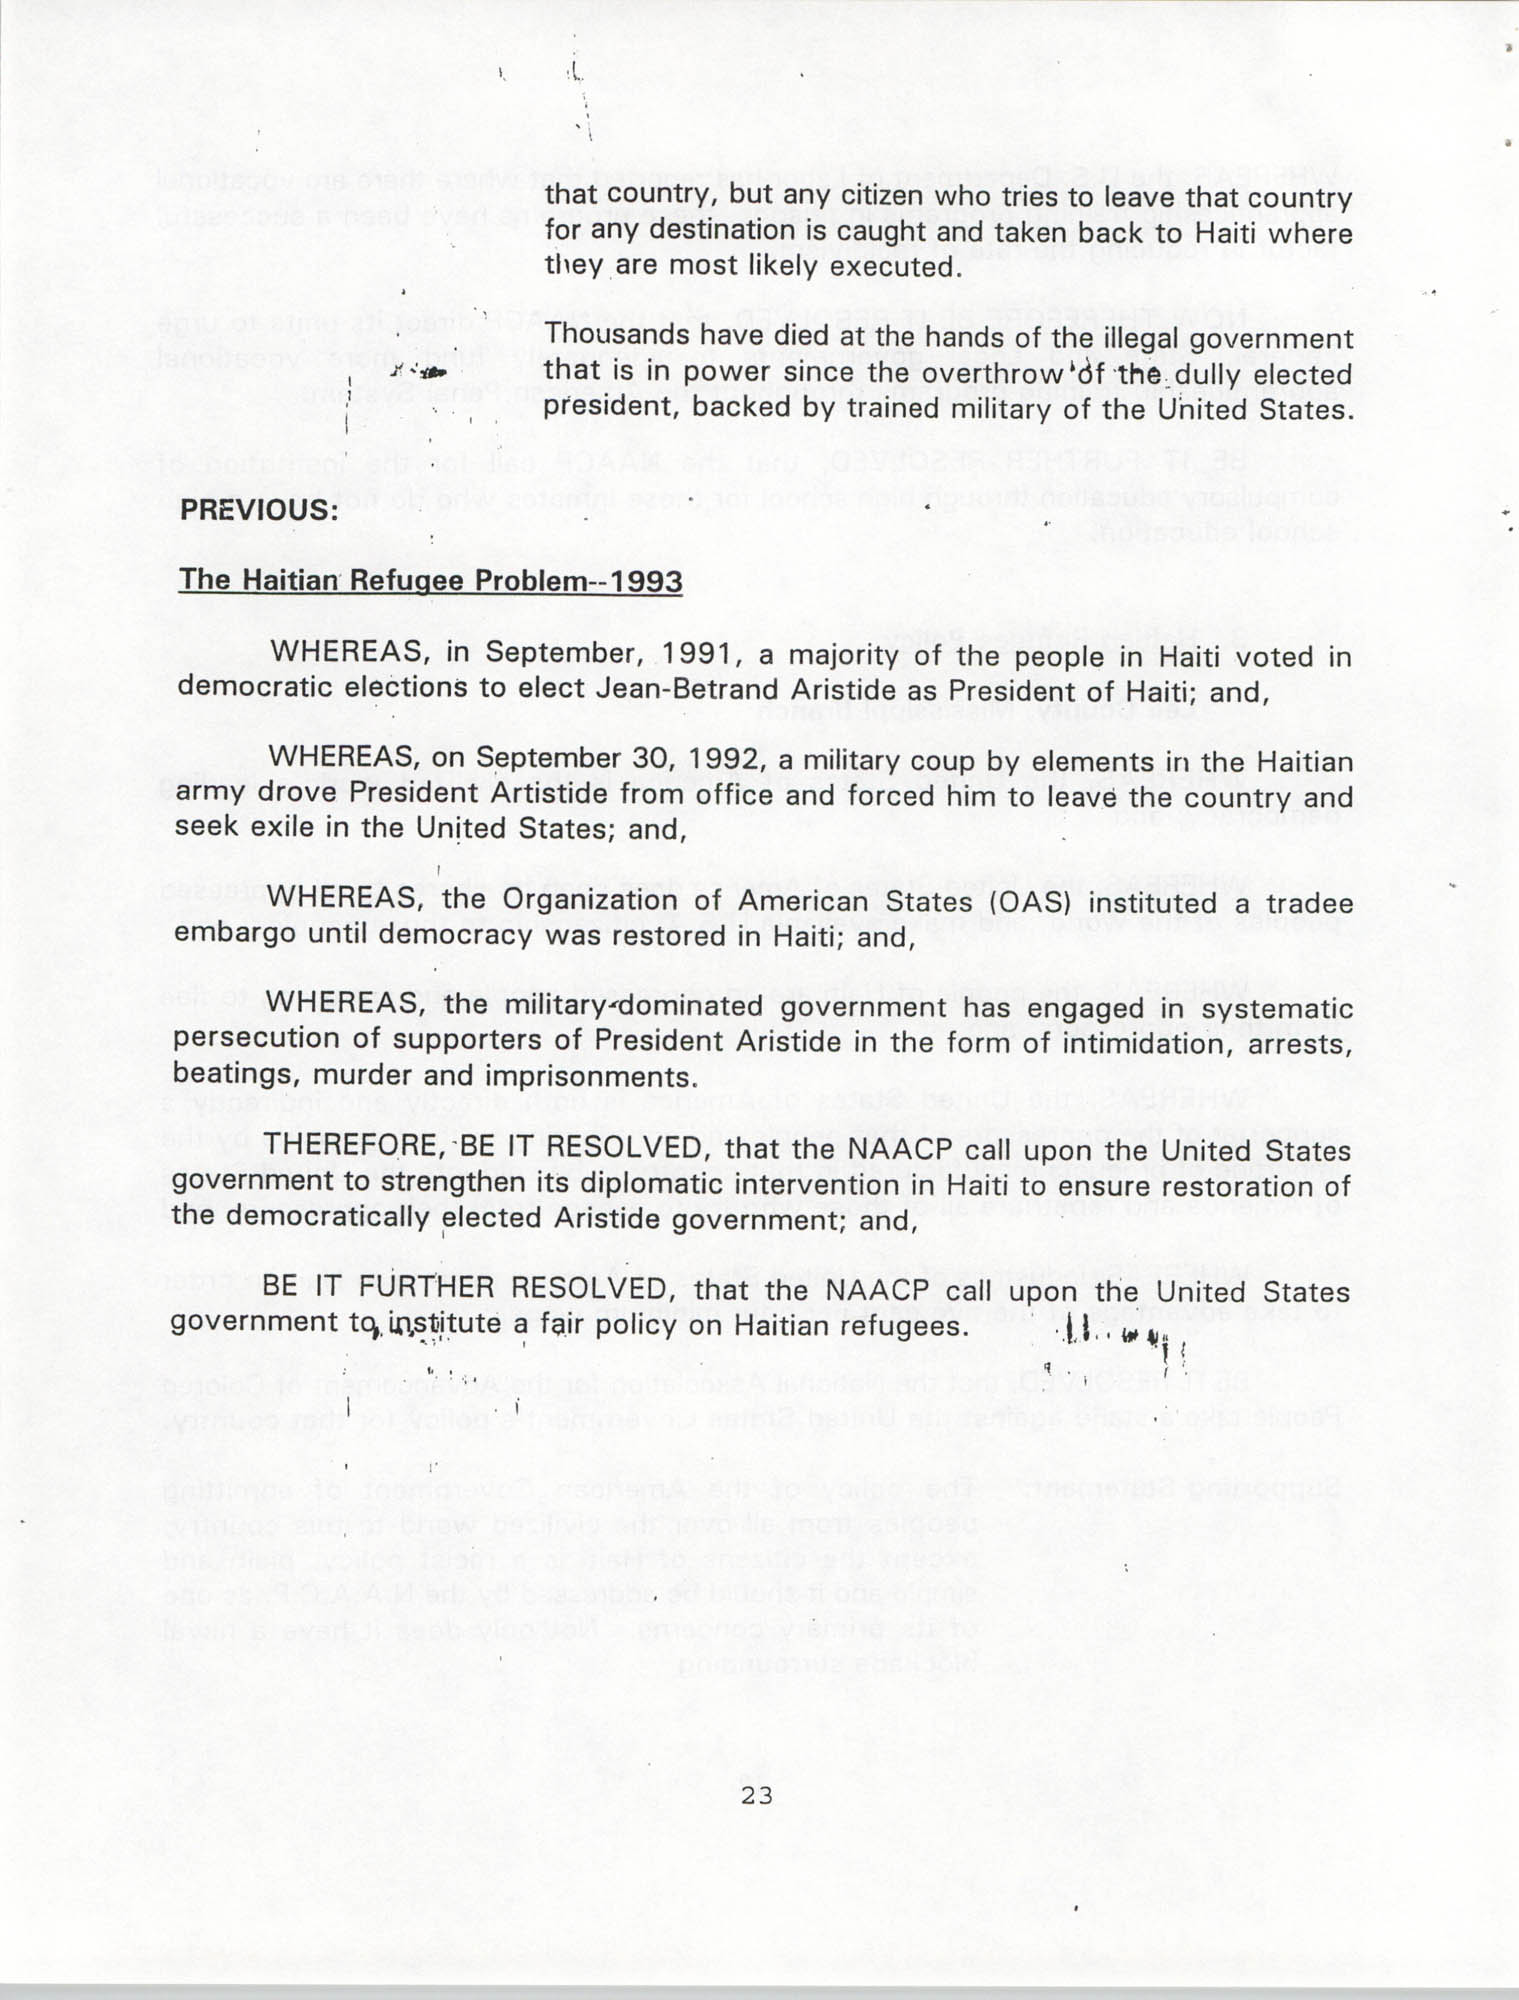 Resolutions Submitted Under Article X, Section 2 of the Constitution of the NAACP, 1994, Page 23